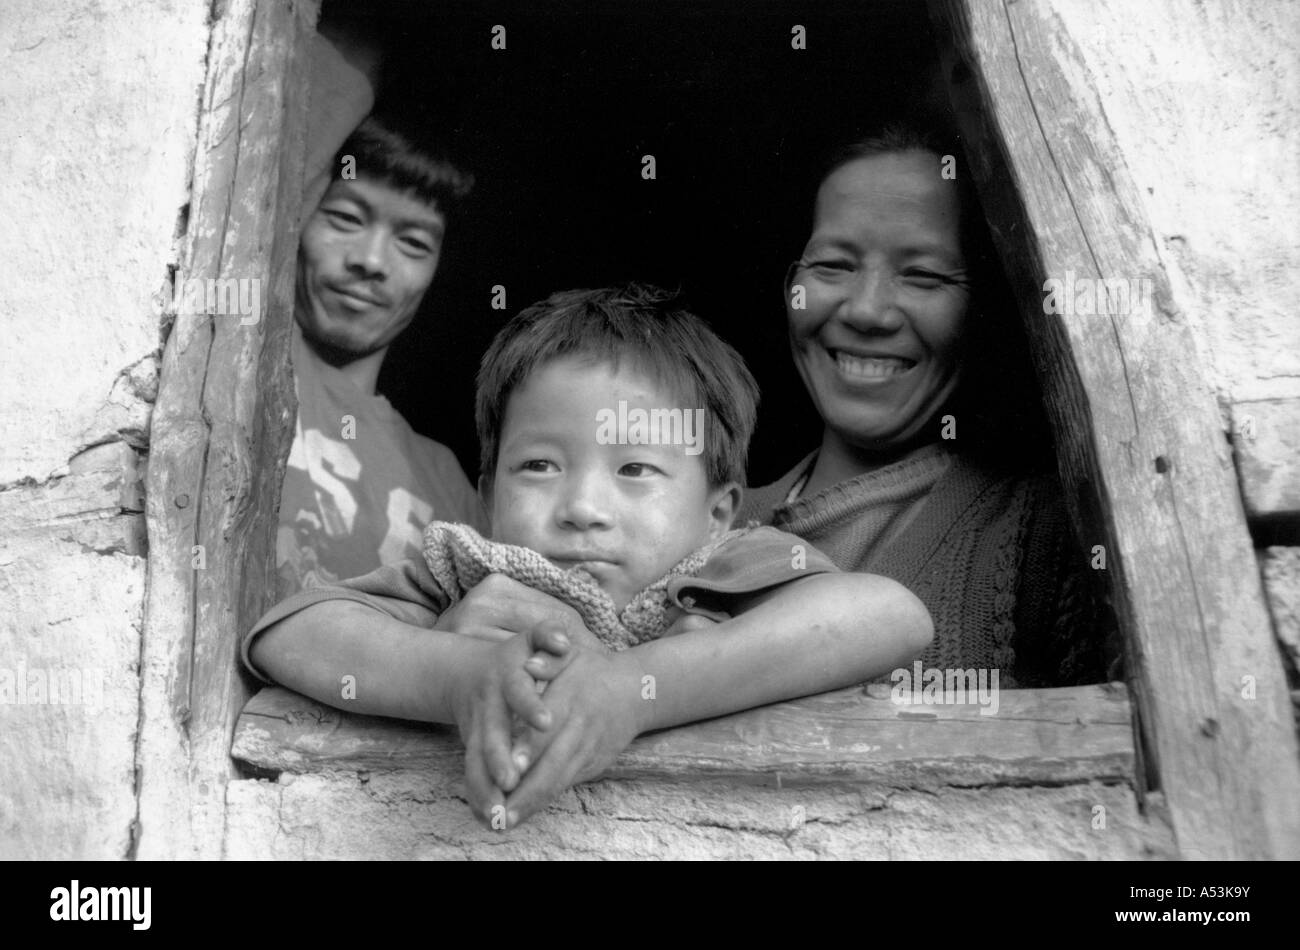 Painet ha1231 007 black white family nepali immigrant kalimpong india country developing nation economically developed - Stock Image